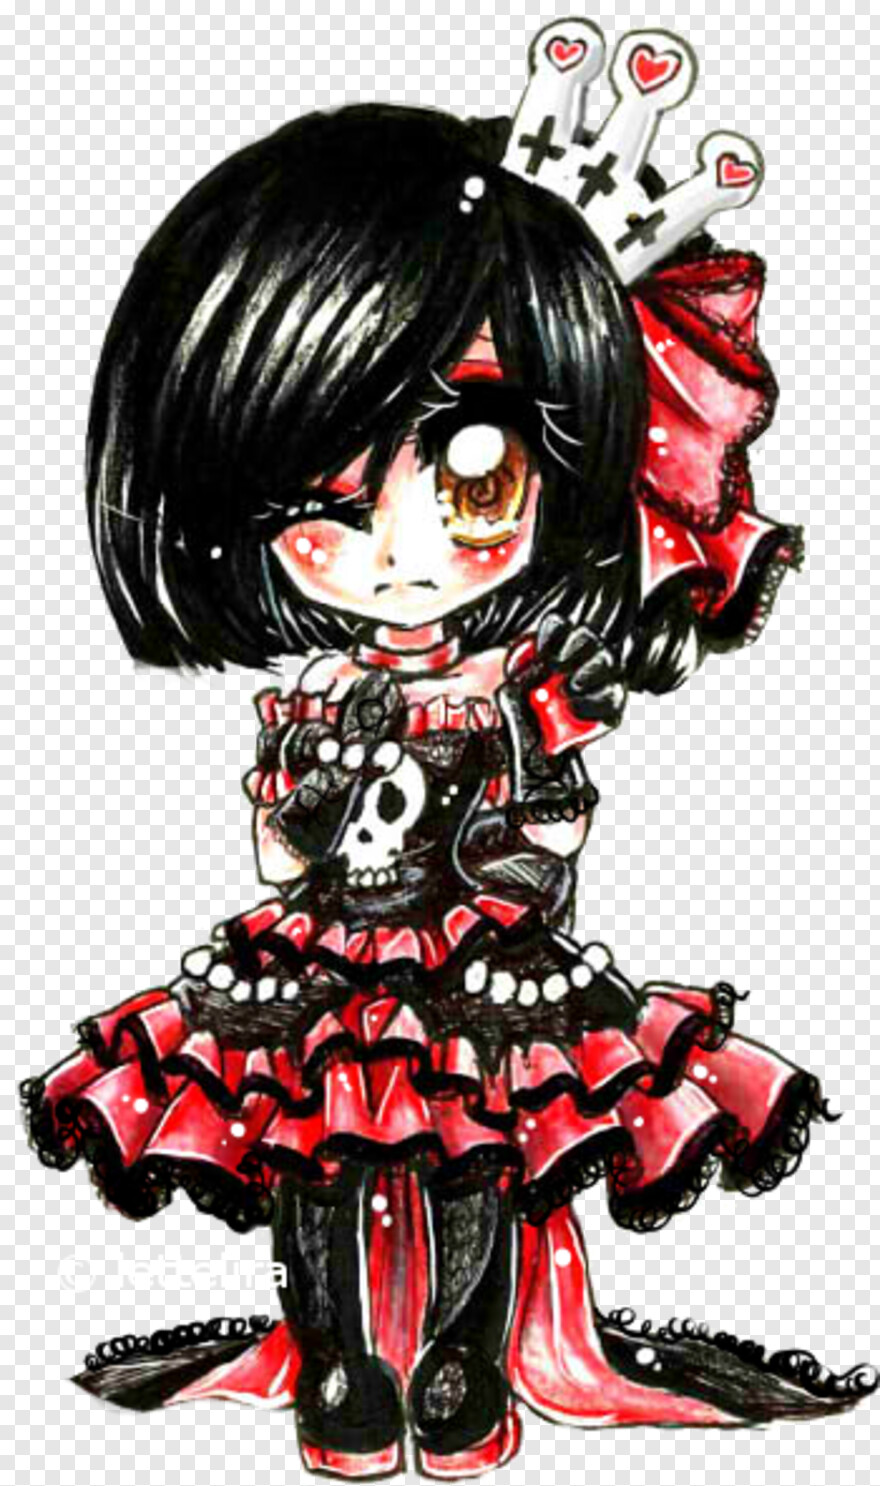 Goth - Chibi Anime Gothic Girl, Png Download - 10x10 (#10